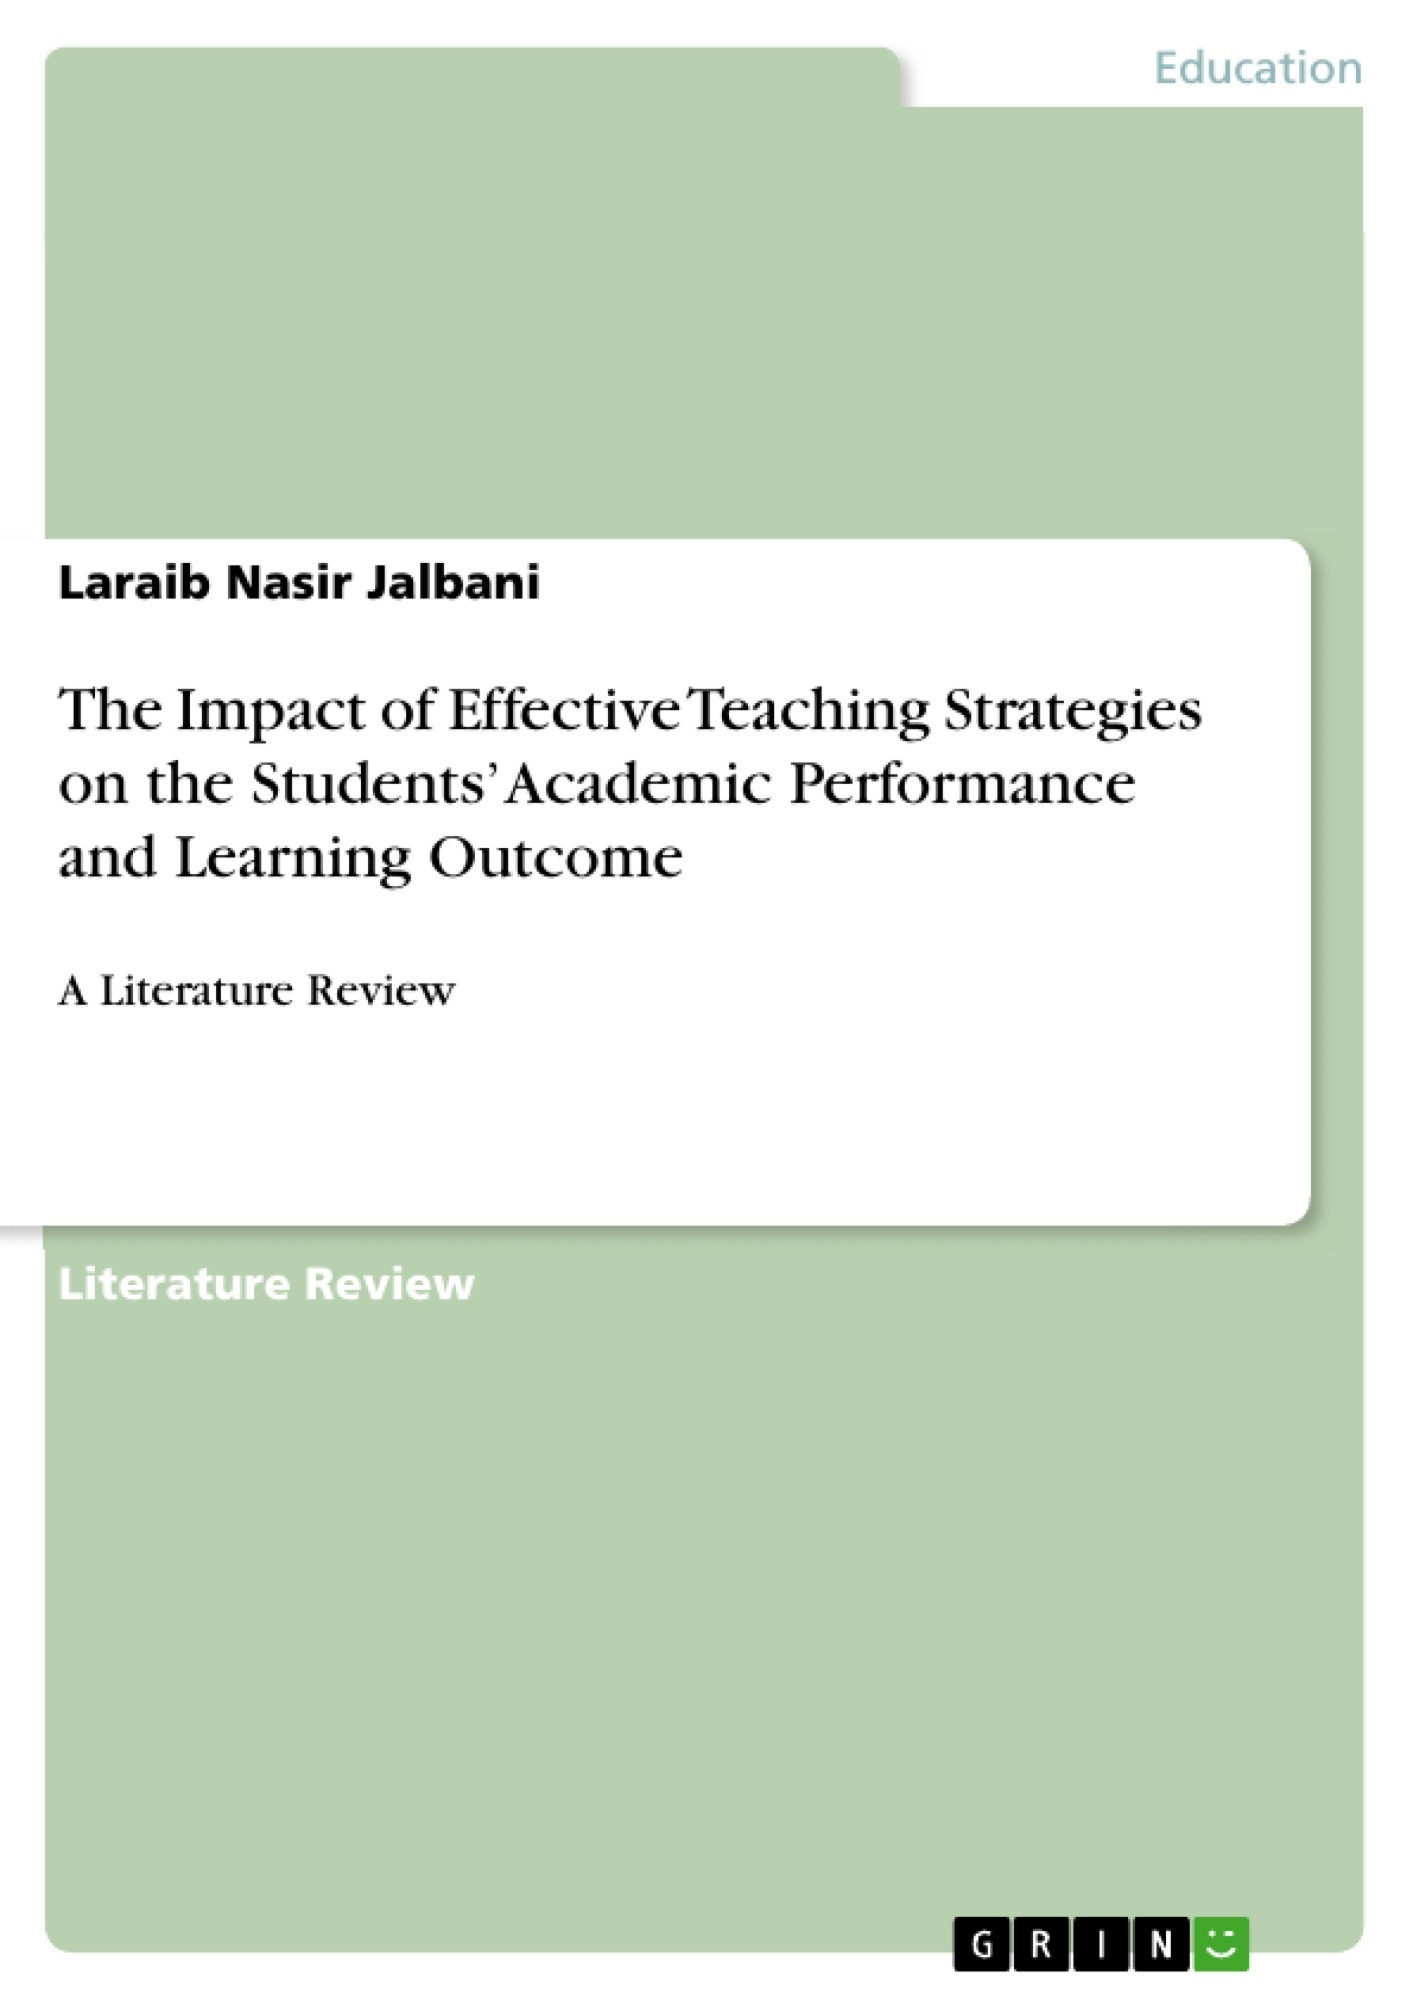 The Impact Of Effective Teaching Strategies On The Students  The Impact Of Effective Teaching Strategies On The Students Academic  Performance And Learning Outcome